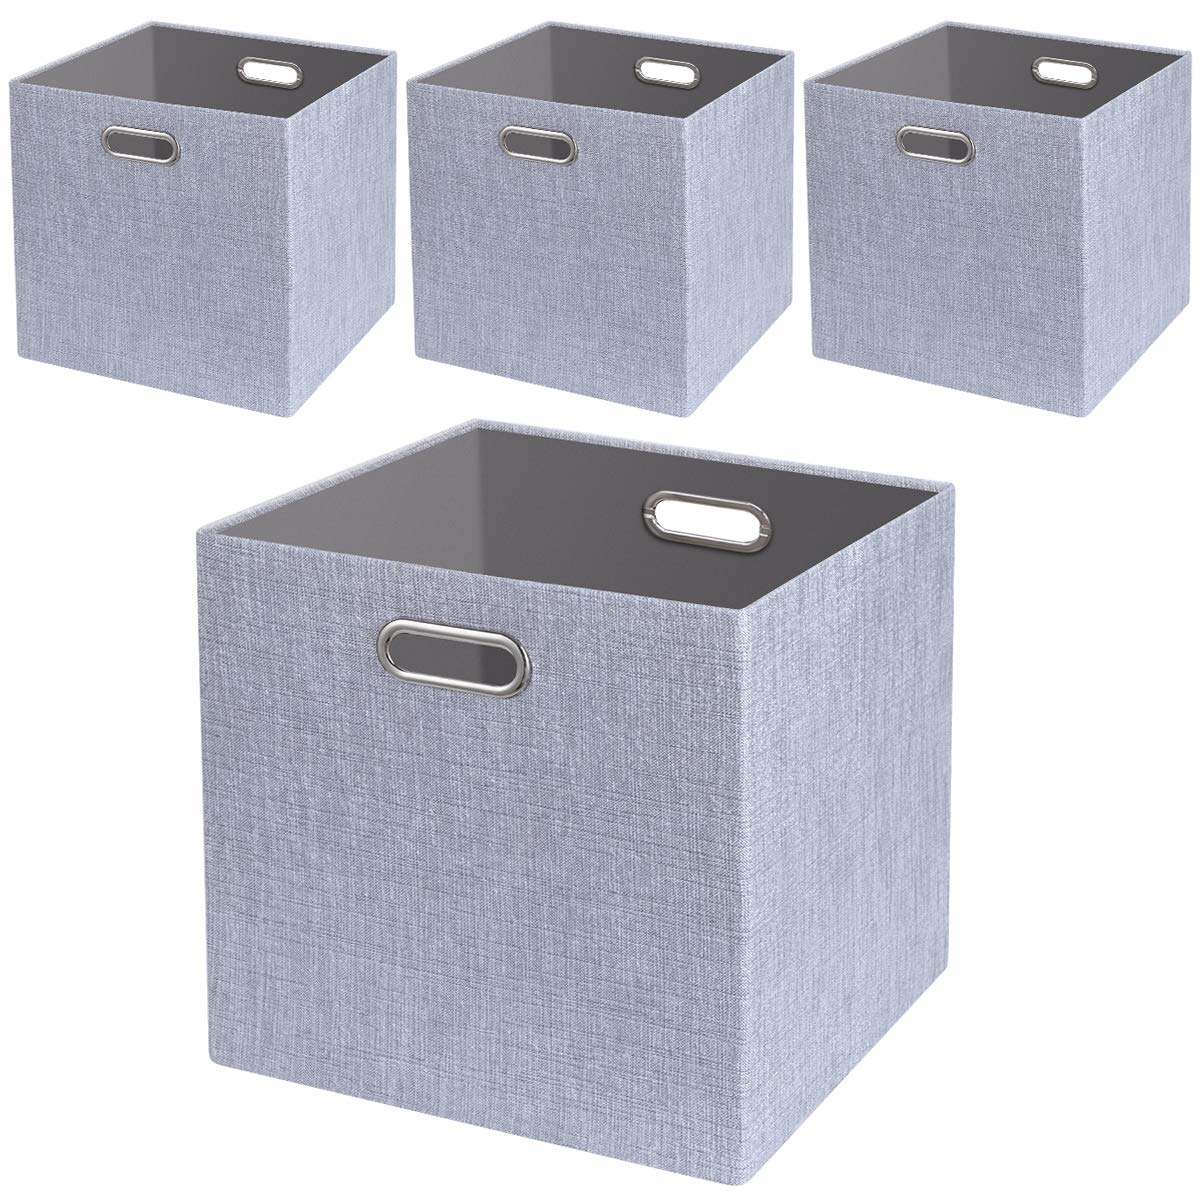 Foldable Storage Bins,13x13 Storage Cubes Basket Containers for Shelf Cabinet Bookcase Boxes,Thick Fabric Drawers,4pcs, Sliver Grey by Posprica